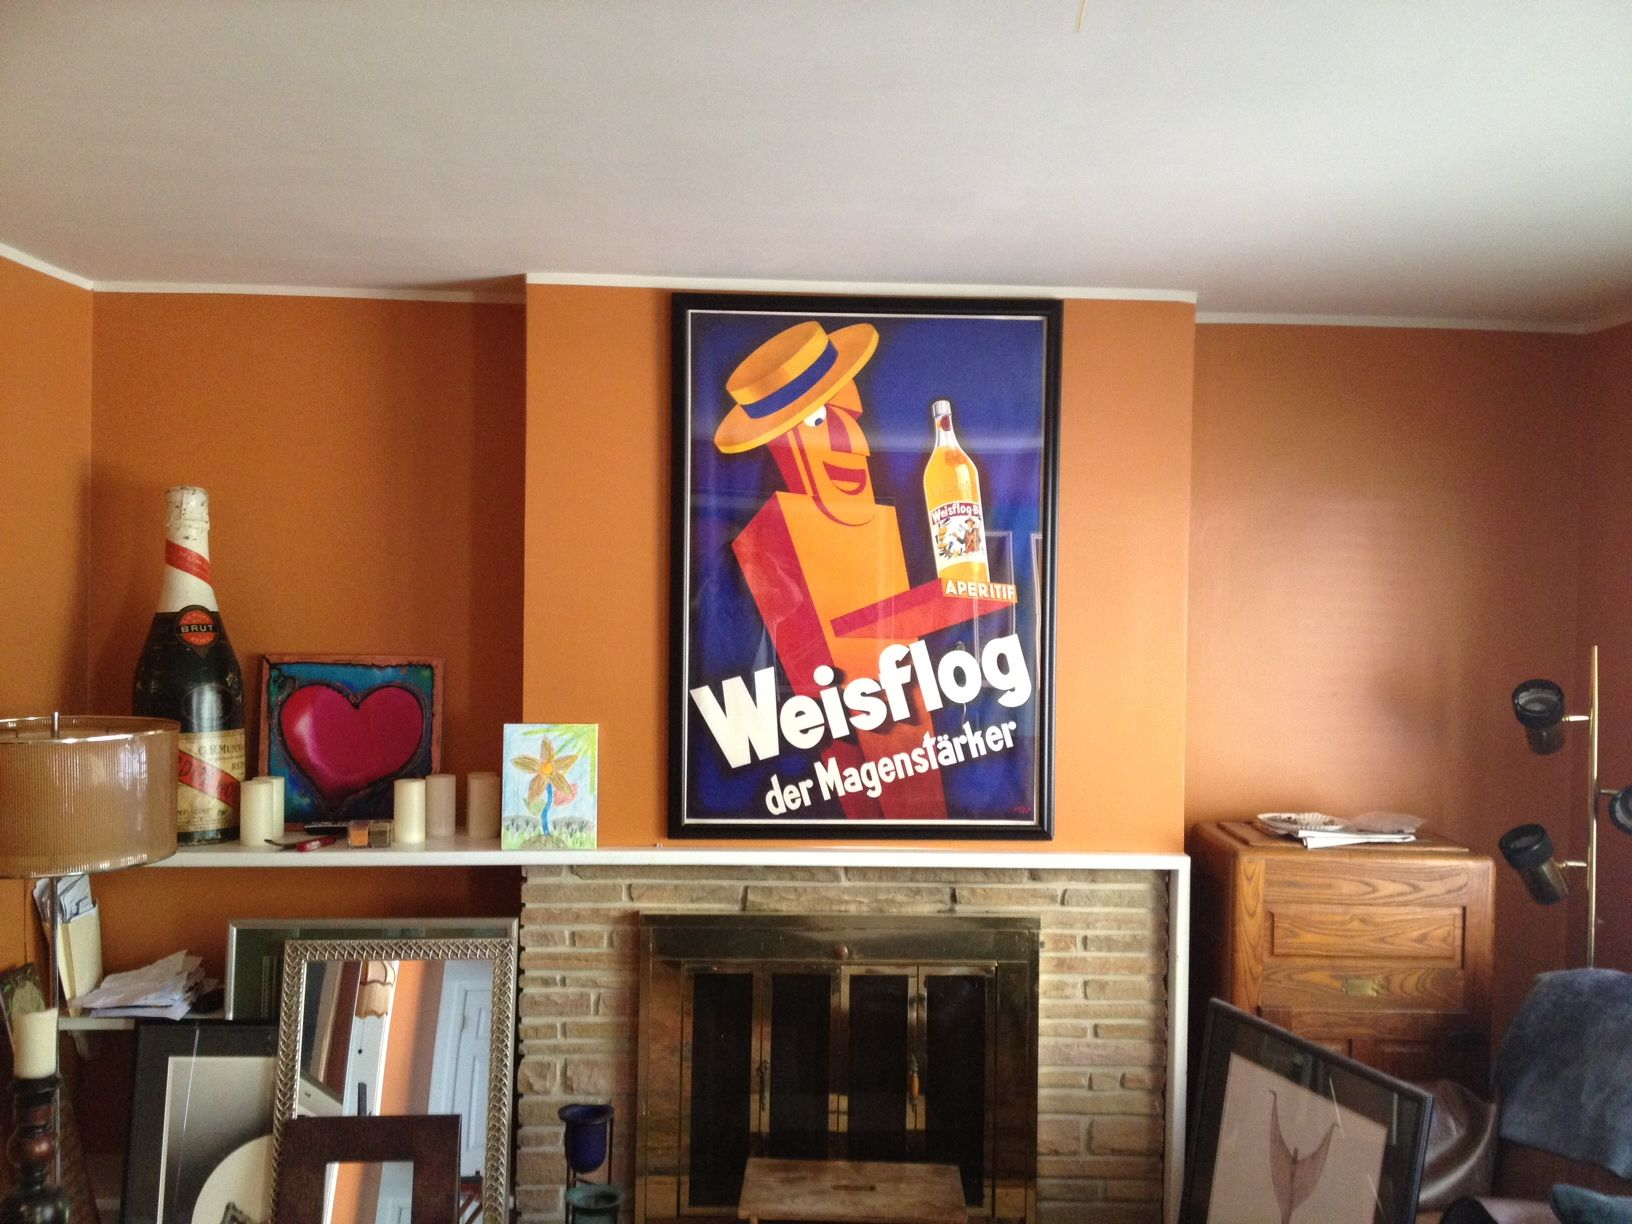 weisflog original vintage poster above fire place blue wine originalvintage fireplace